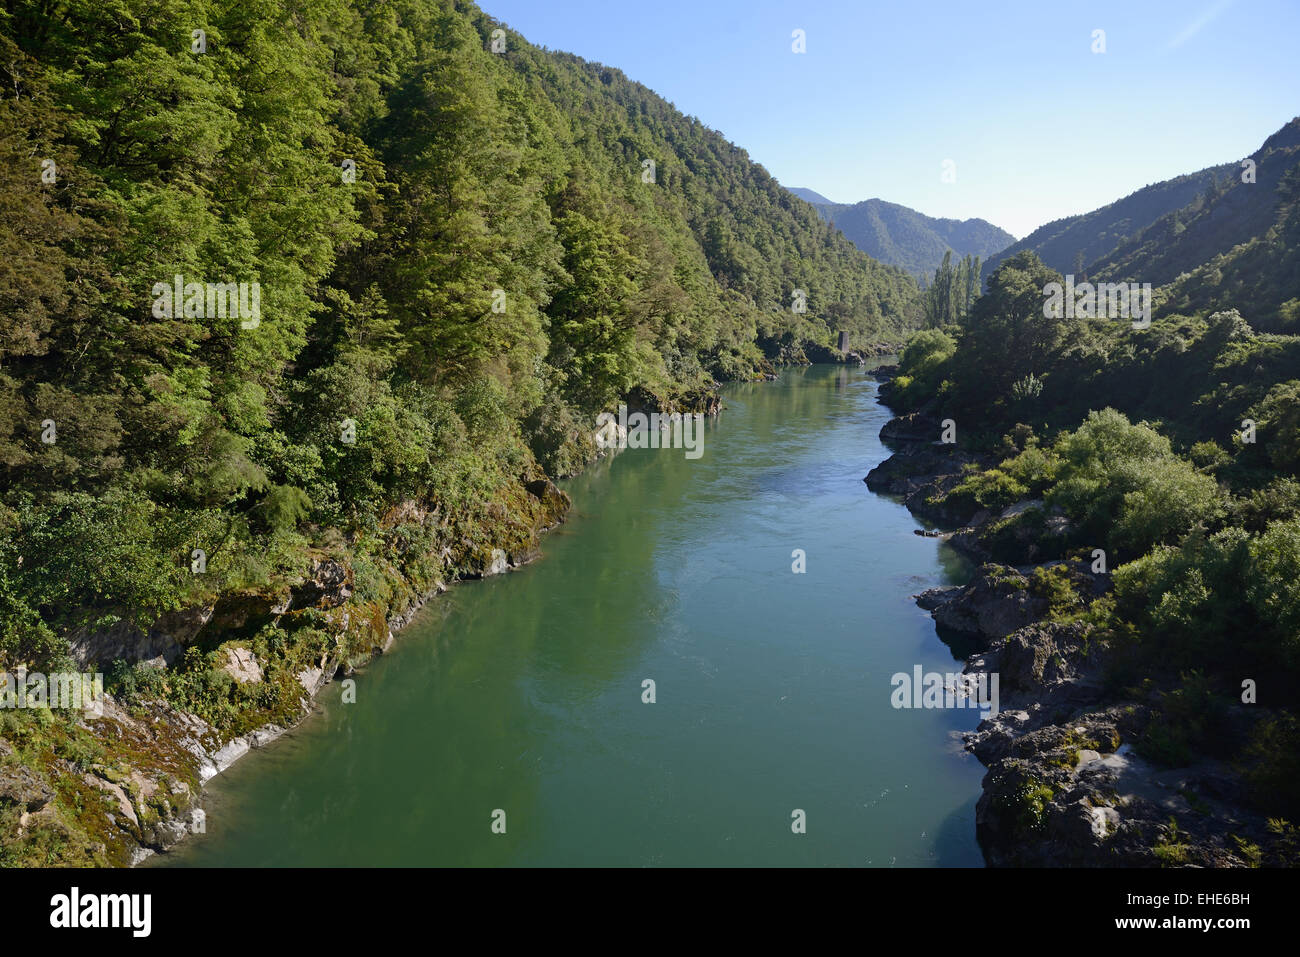 The Buller River flows through native beech forest in Westland, New Zealand. Stock Photo